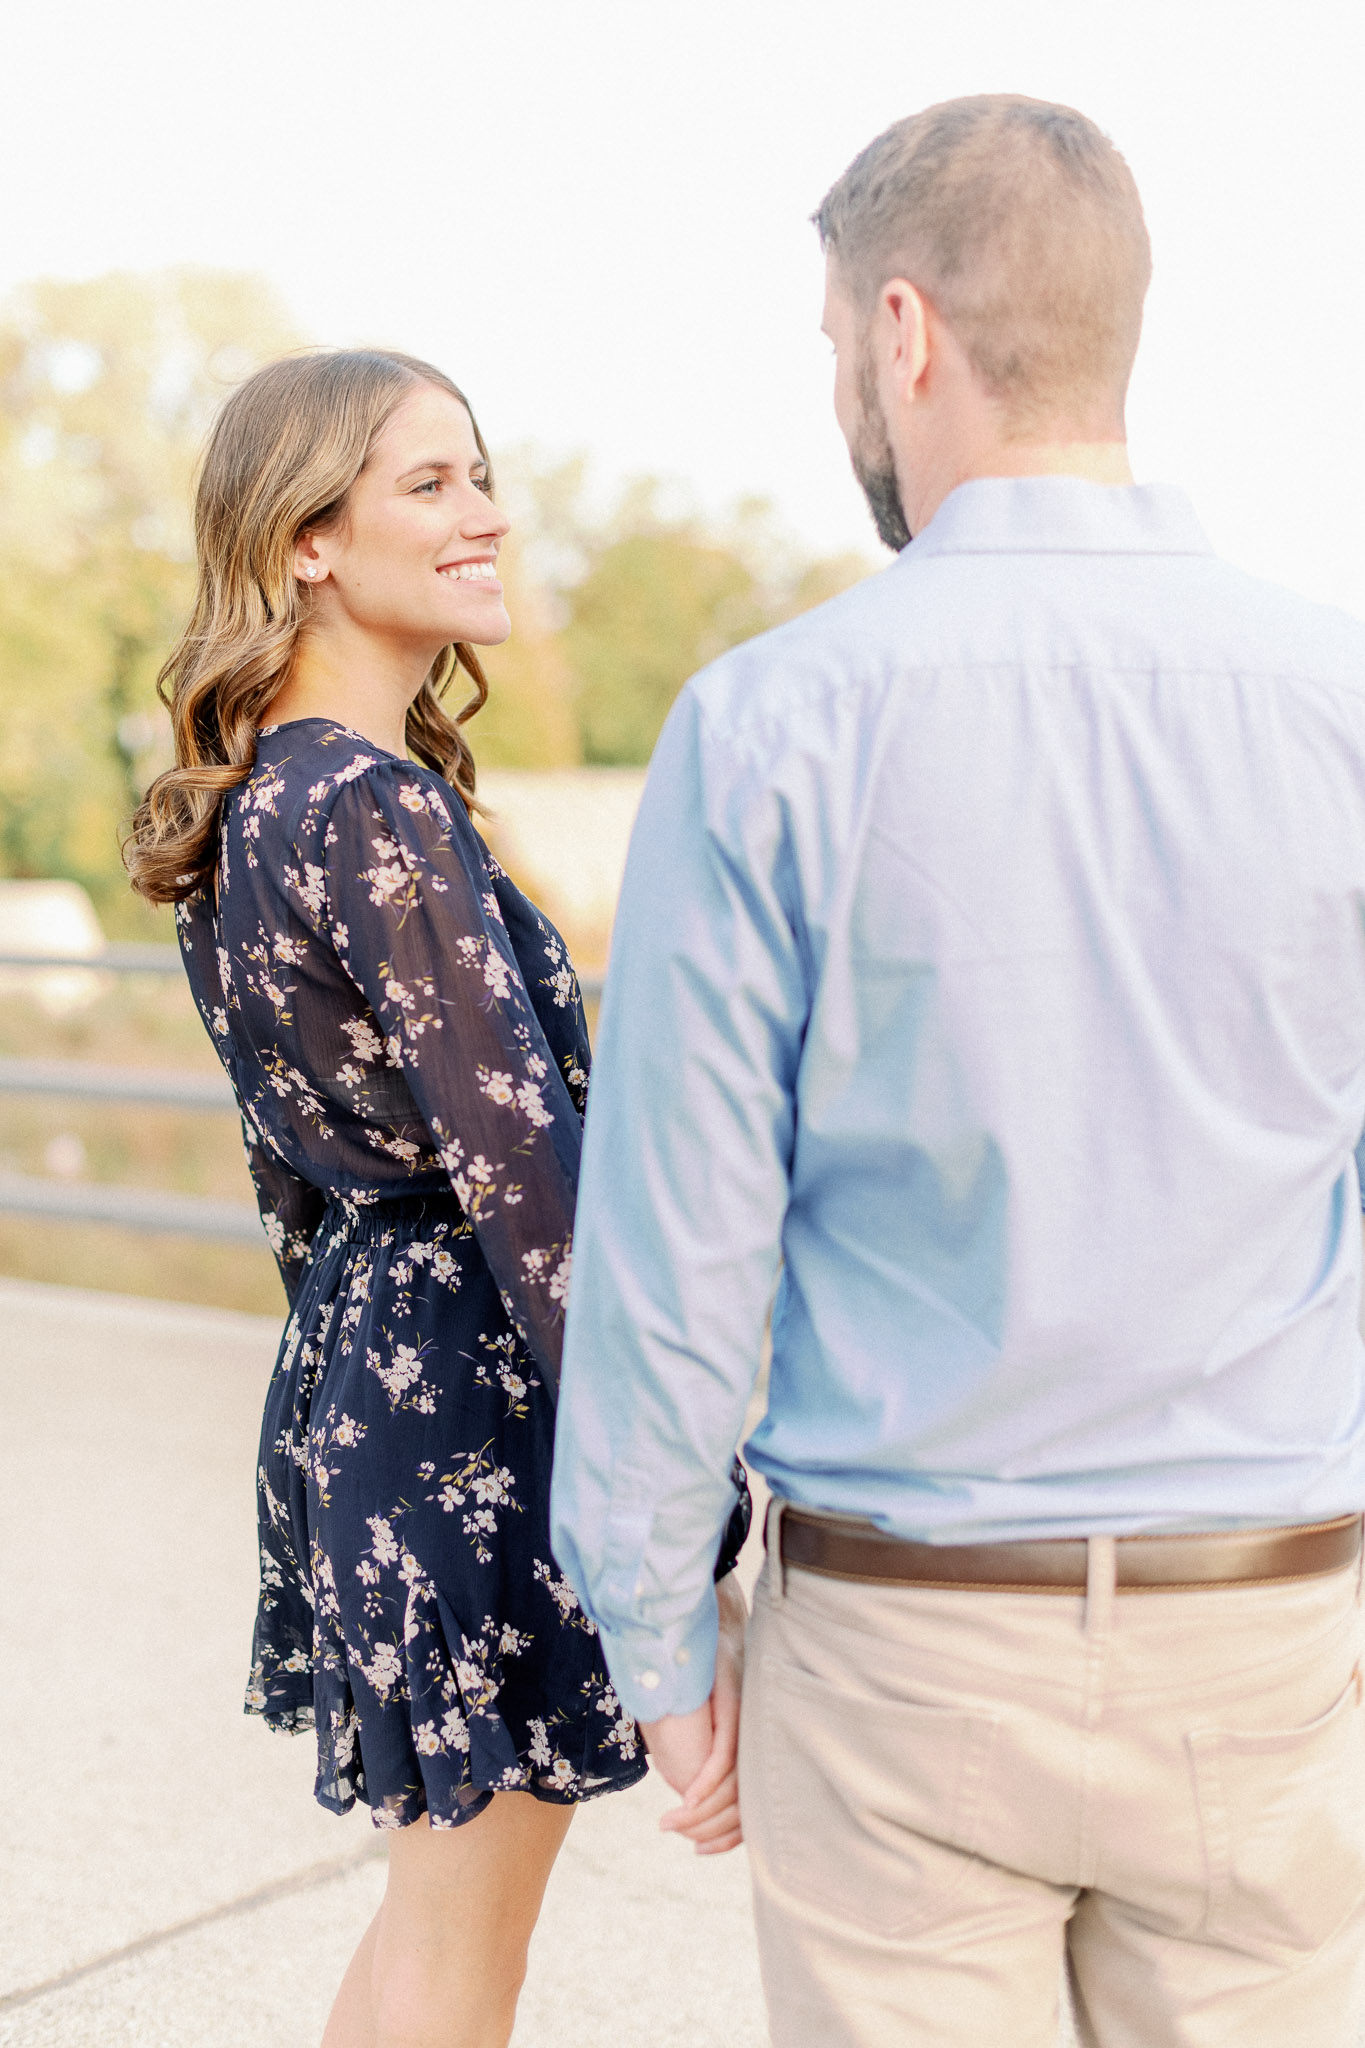 Light + Airy Chicago Naples Engagement Photographer - Lincoln Park Engagement